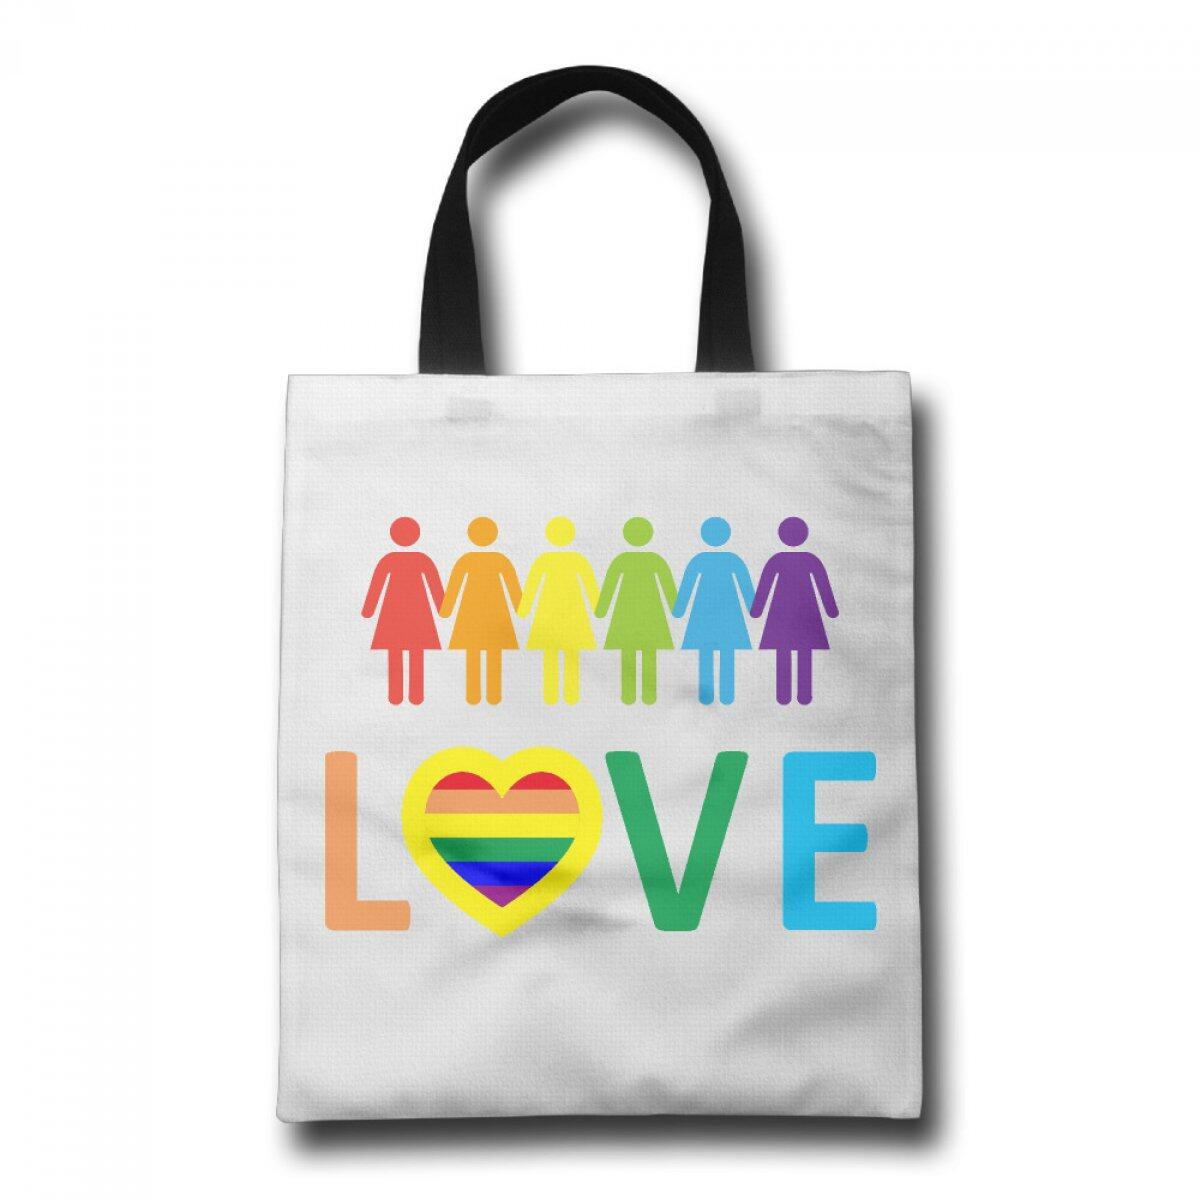 copy of PhoRock Women Canvas Tote Bag Printing Love and six people hand in hand Image GWRB005 0